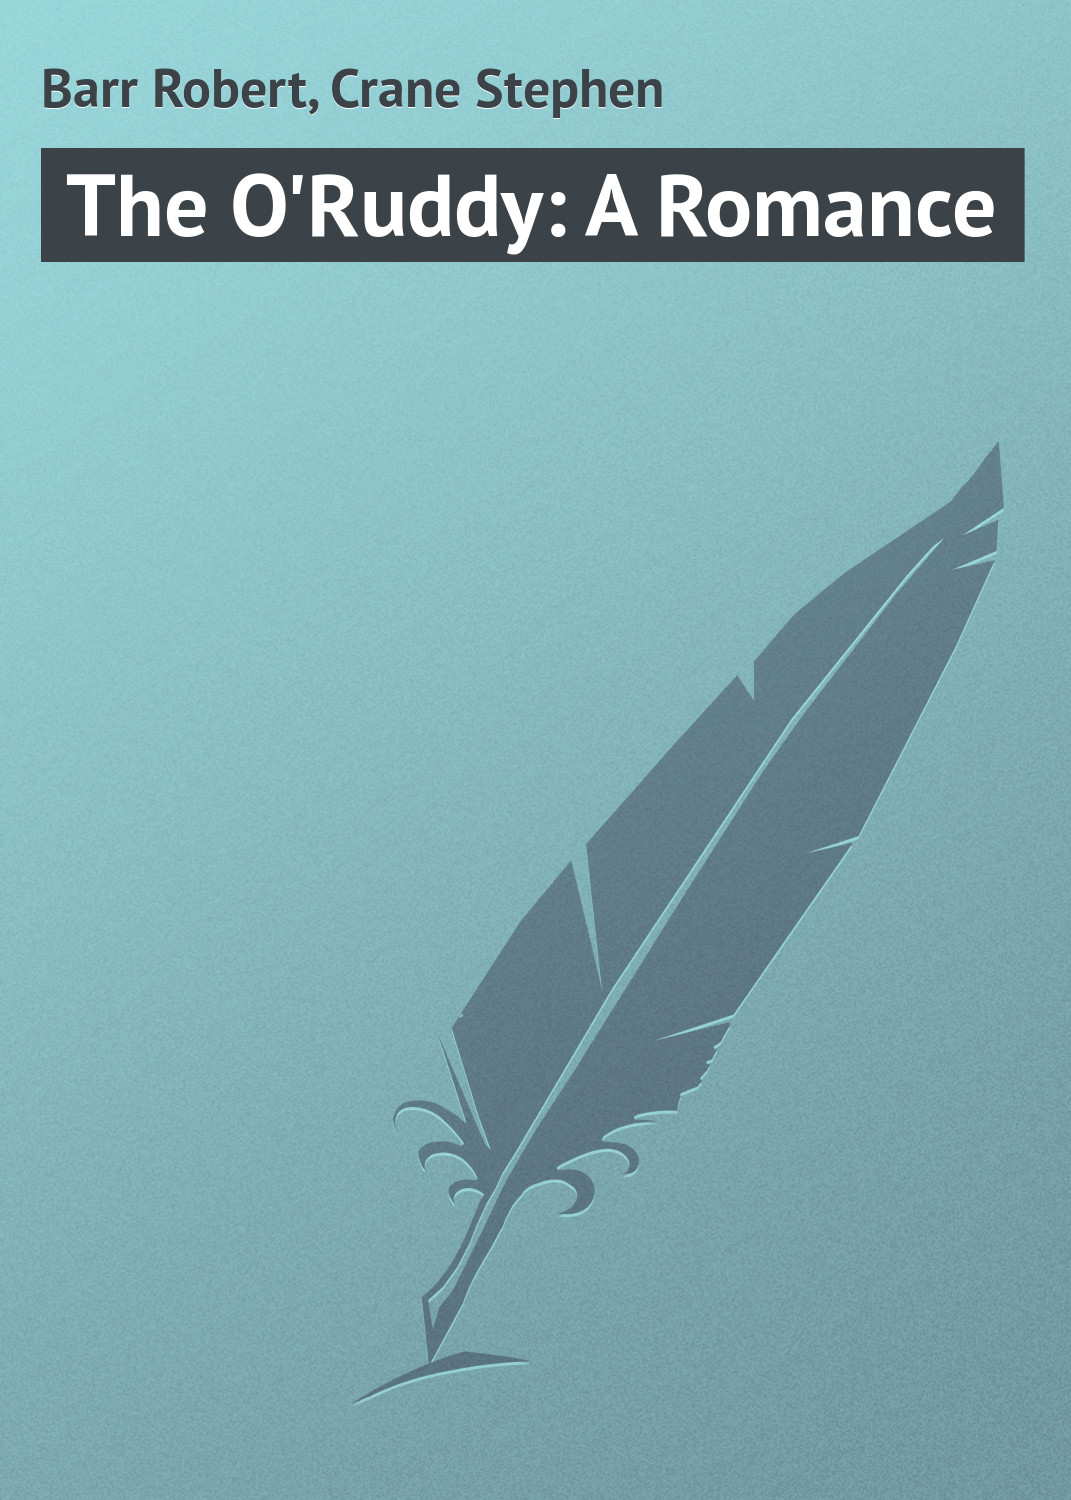 Barr Robert The O'Ruddy: A Romance barr robert the o ruddy a romance